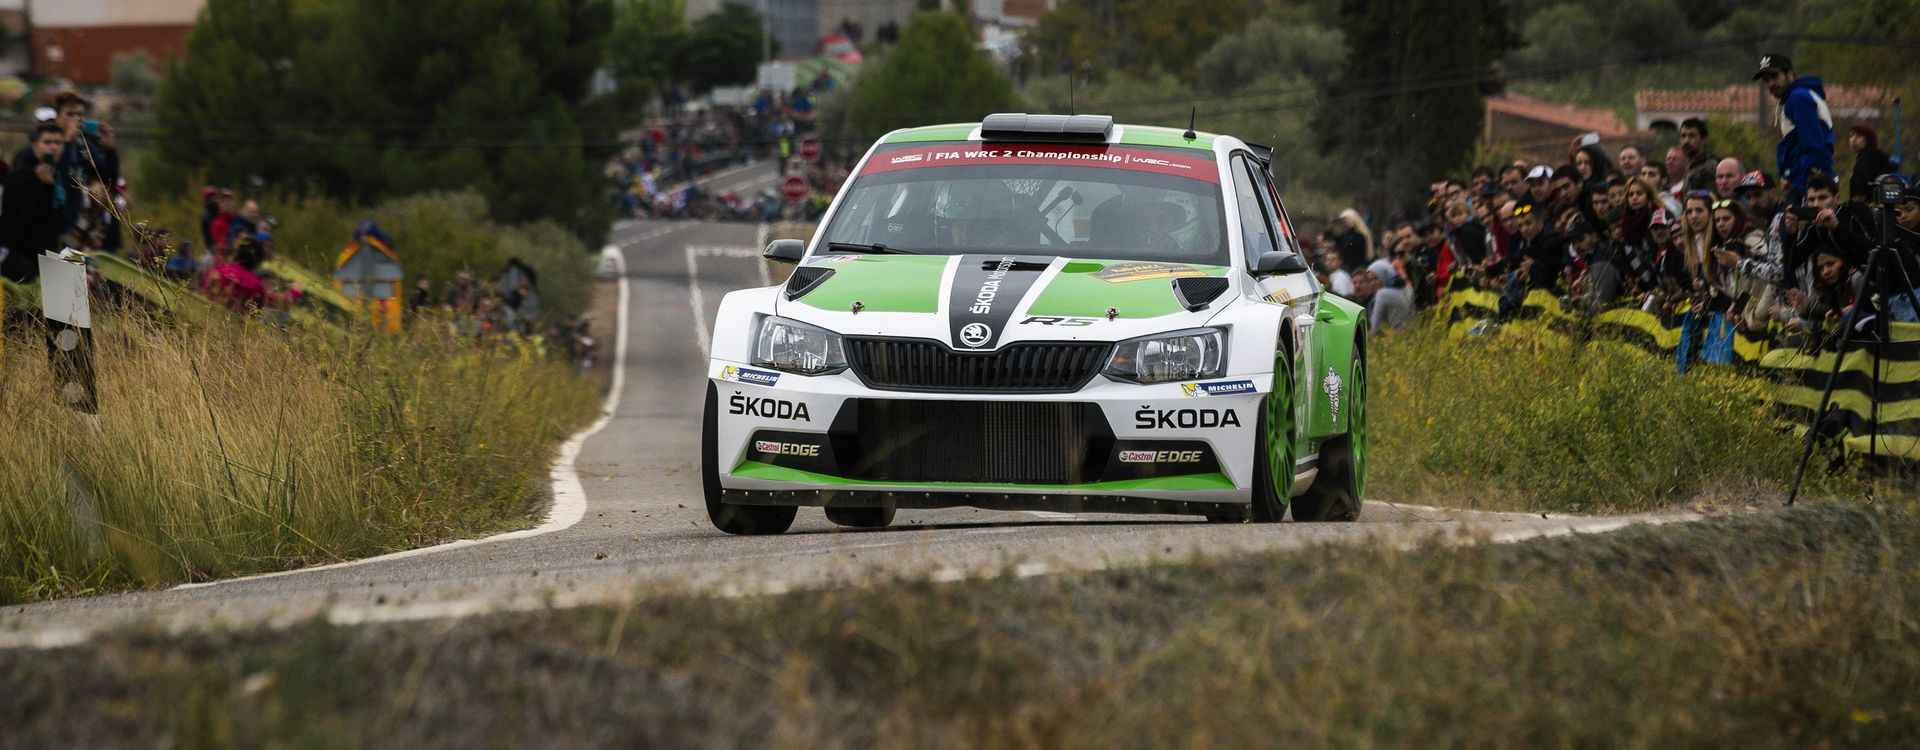 Rally Catalunya: Double and title for ŠKODA Motorsport team